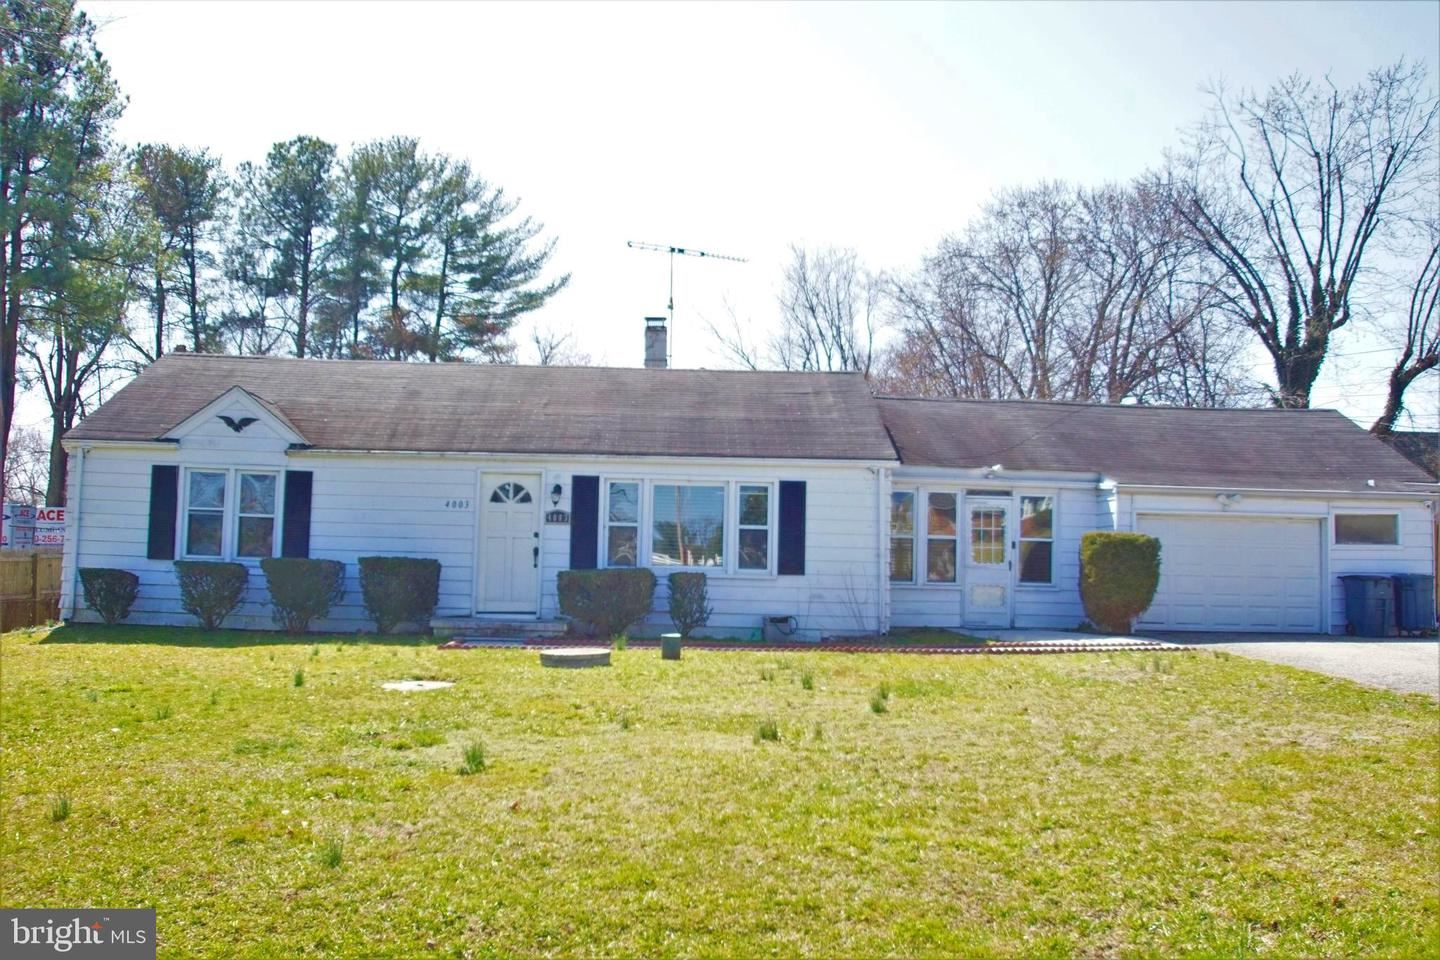 4003 SCHROEDER AVE, Perry Hall, MD 21128 - MLS#: MDBC524250